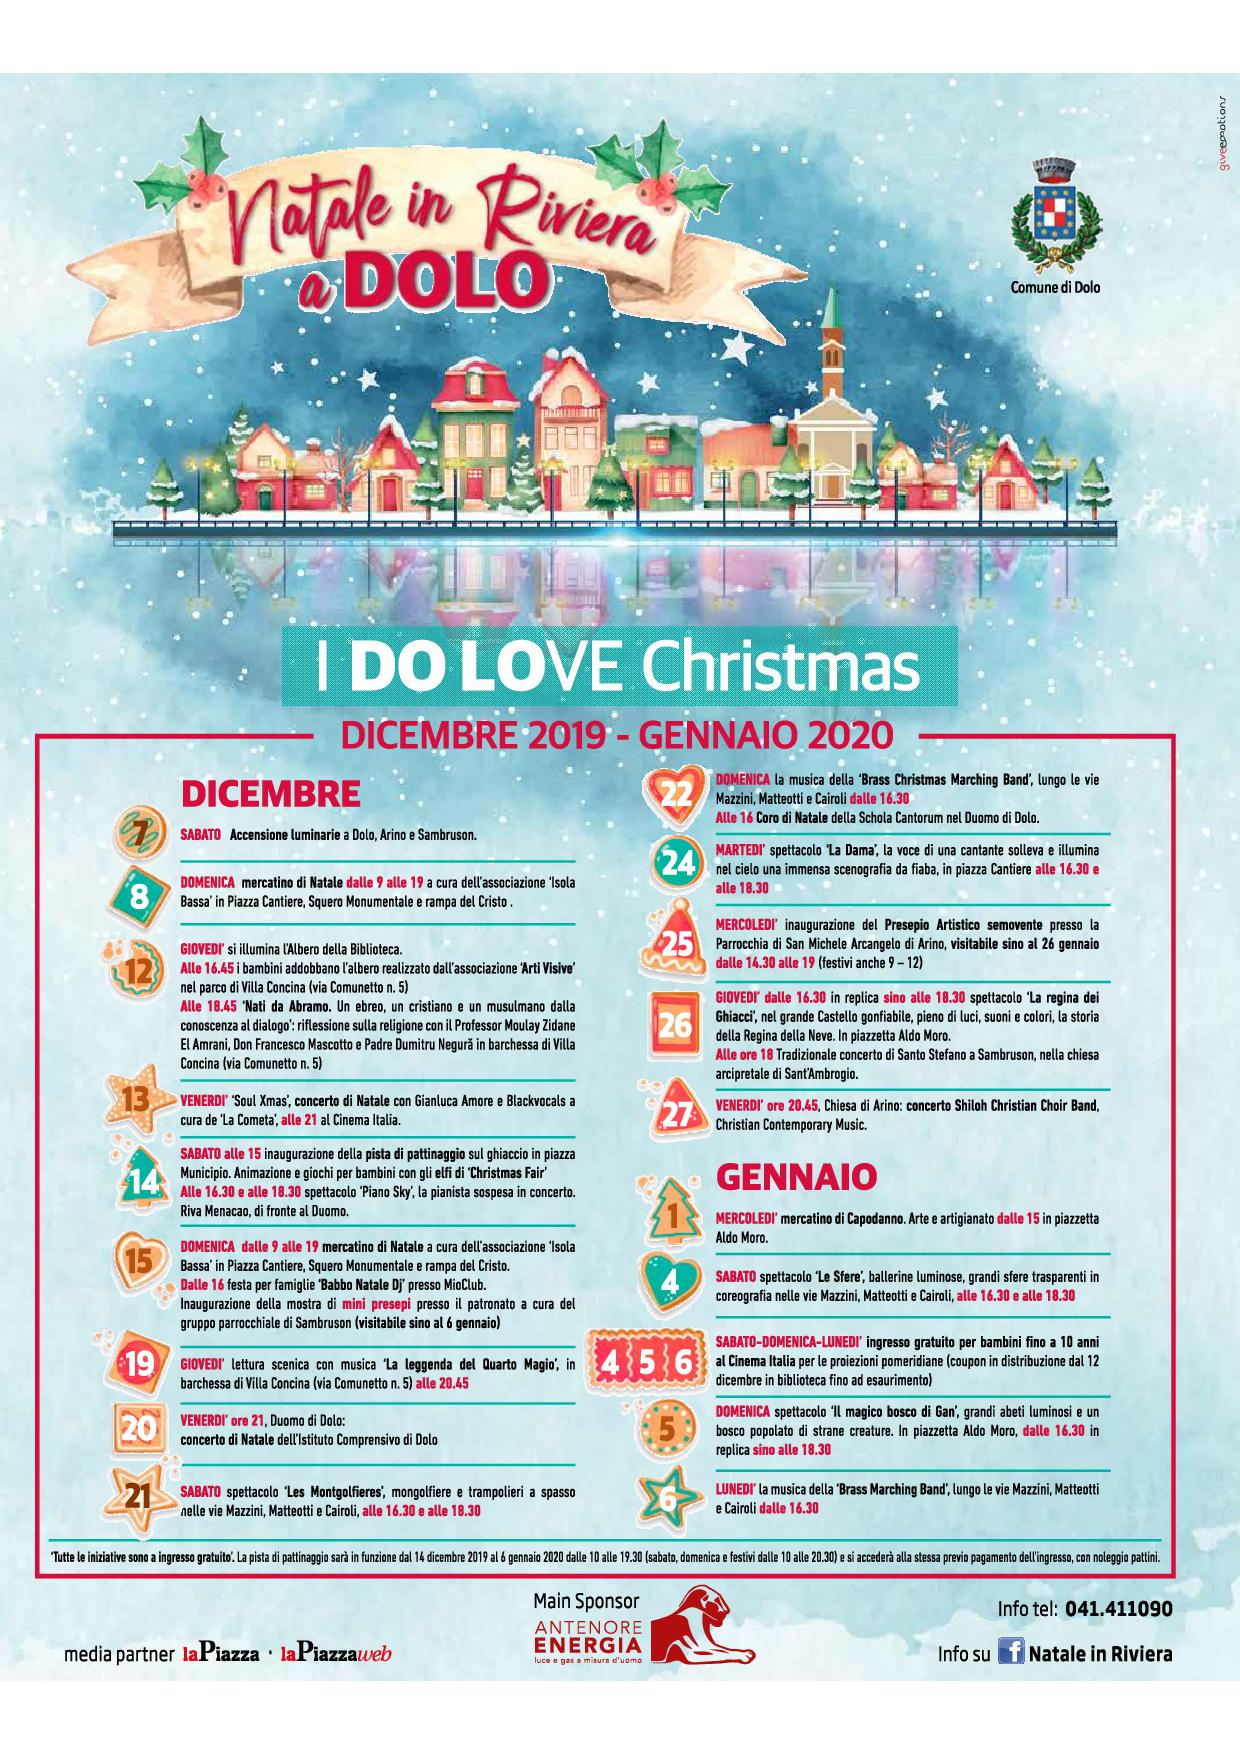 'NATALE IN RIVIERA A DOLO I DO LOVE CHRISTMAS'